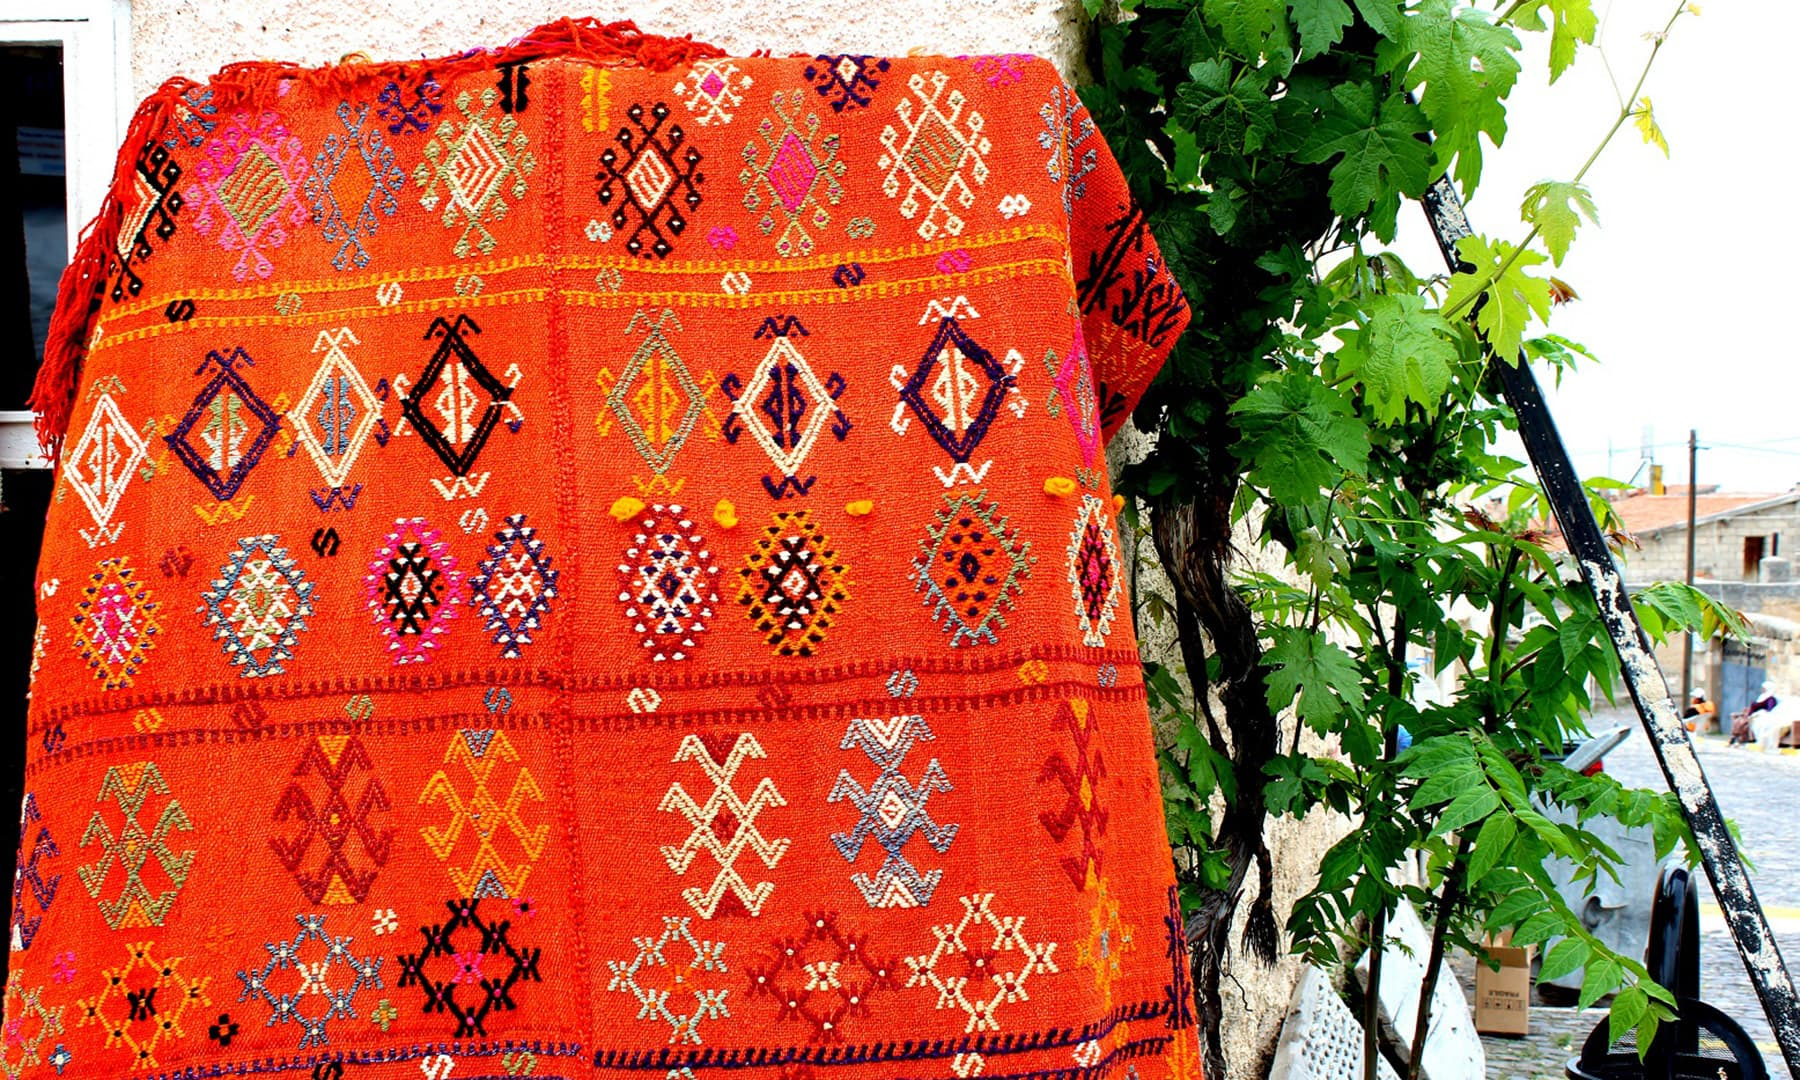 Rugs sold on the roadside.